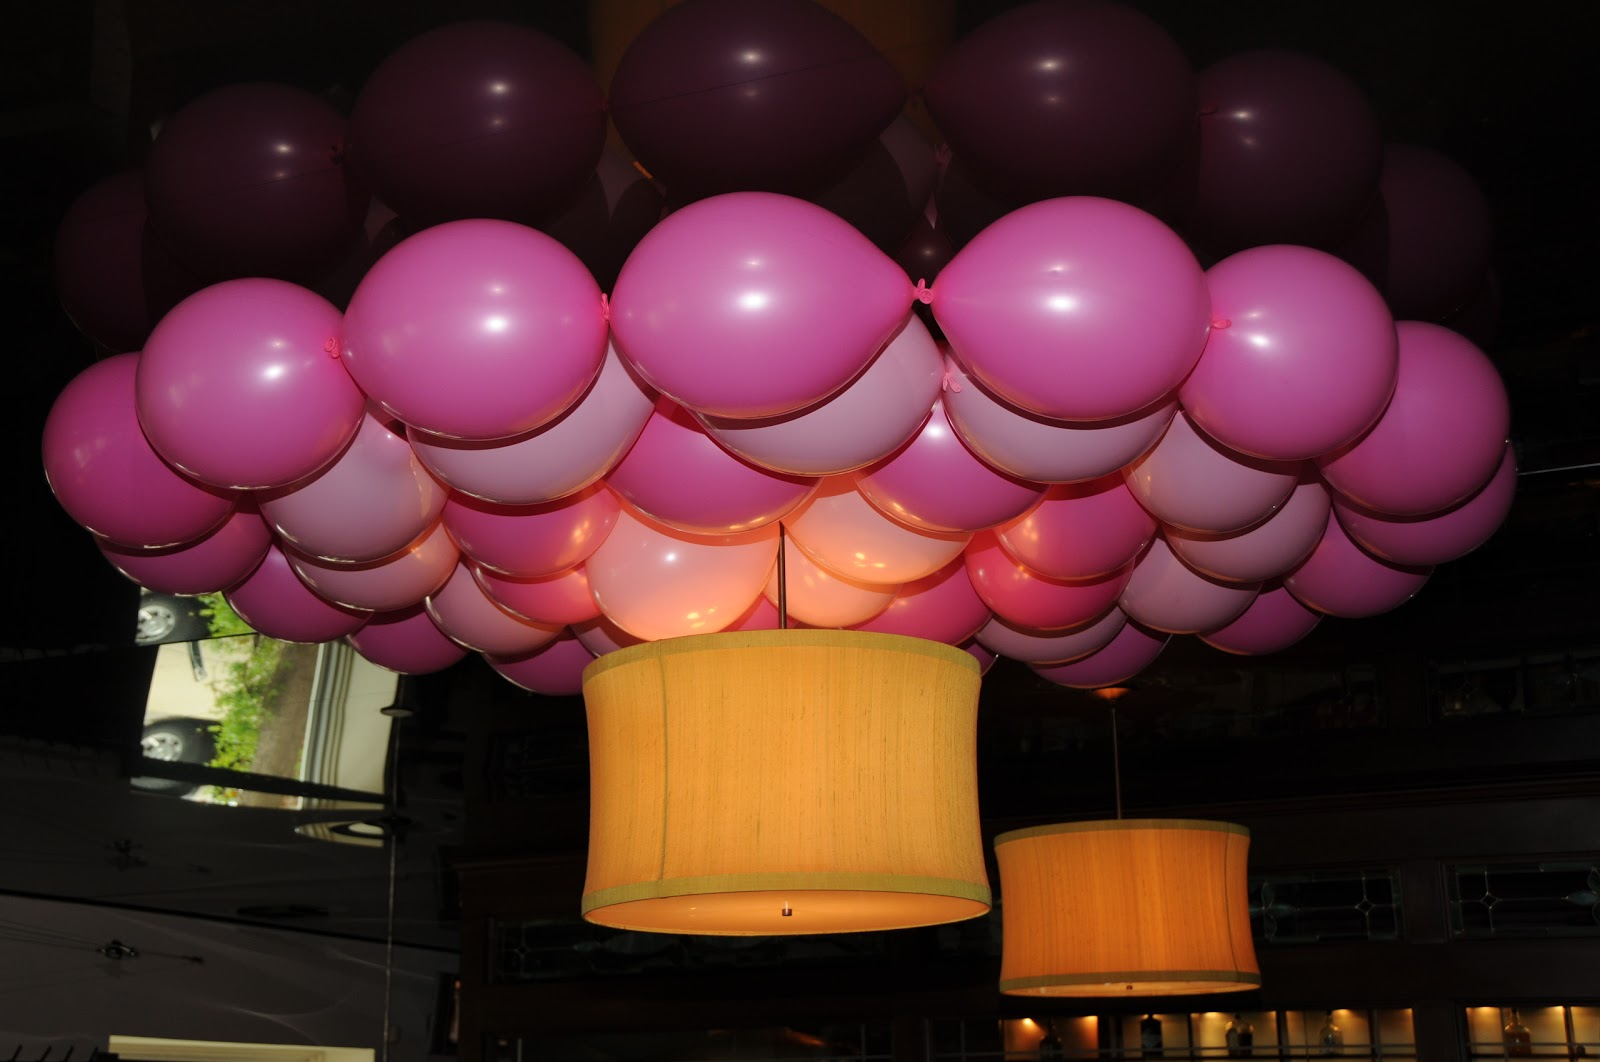 Design Classic Interior 2012: Como Decorar un baby shower con globos